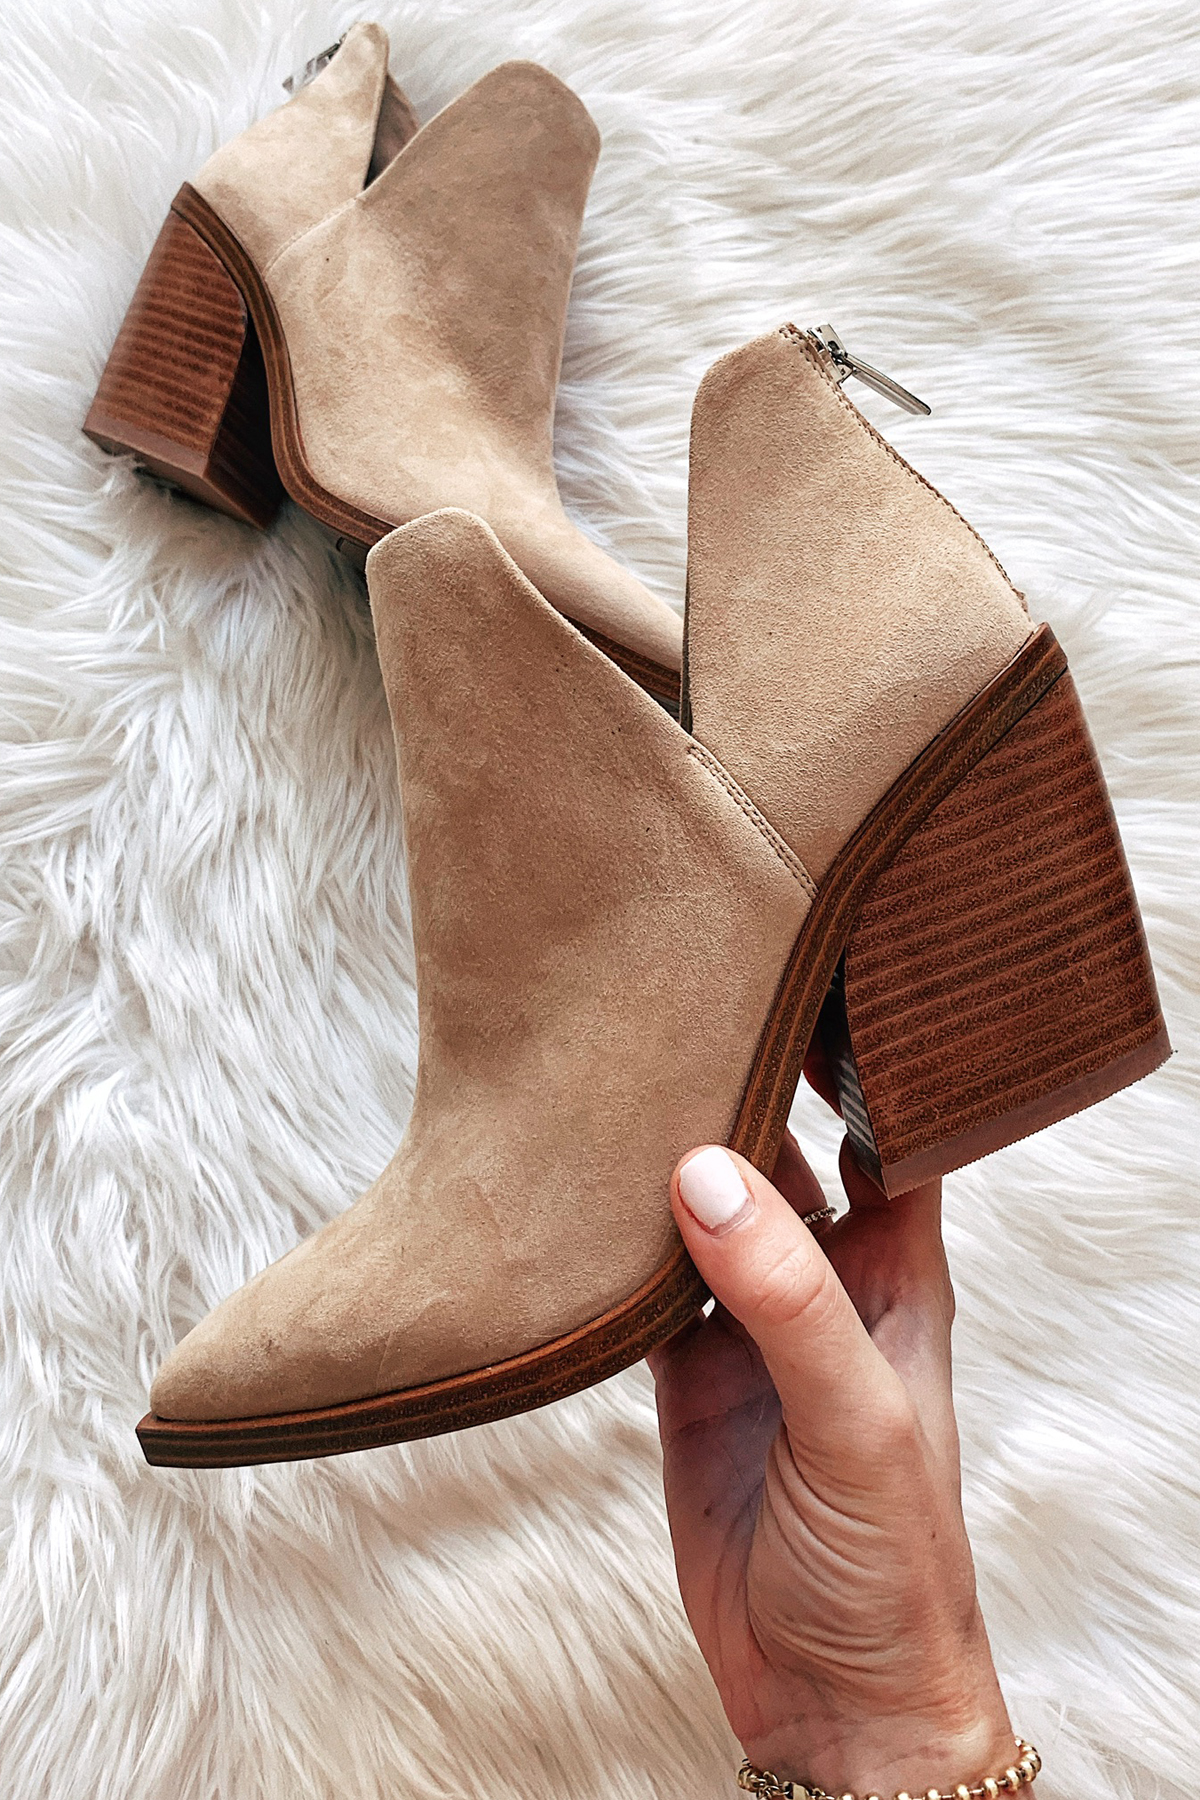 Vince Camuto Tan Ankle Bootie